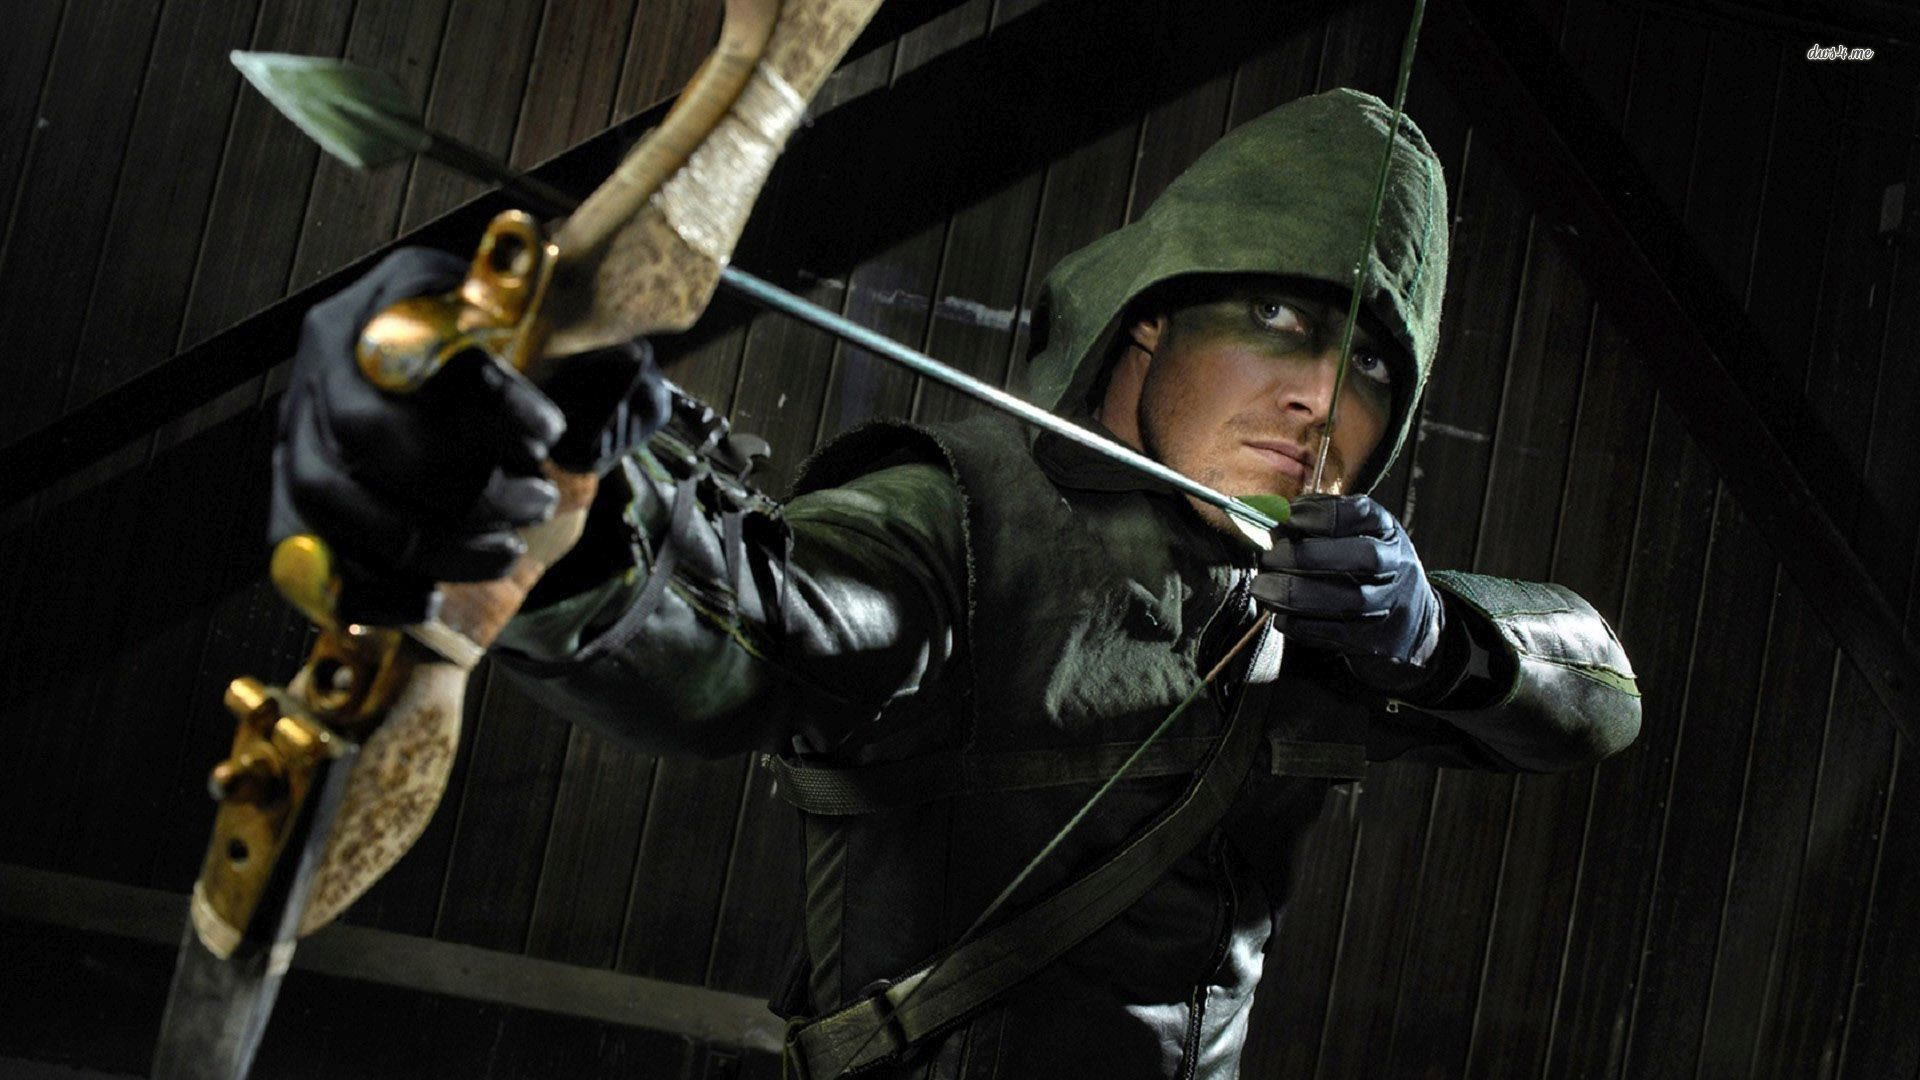 1920x1080 HD Oliver Queen wallpapers